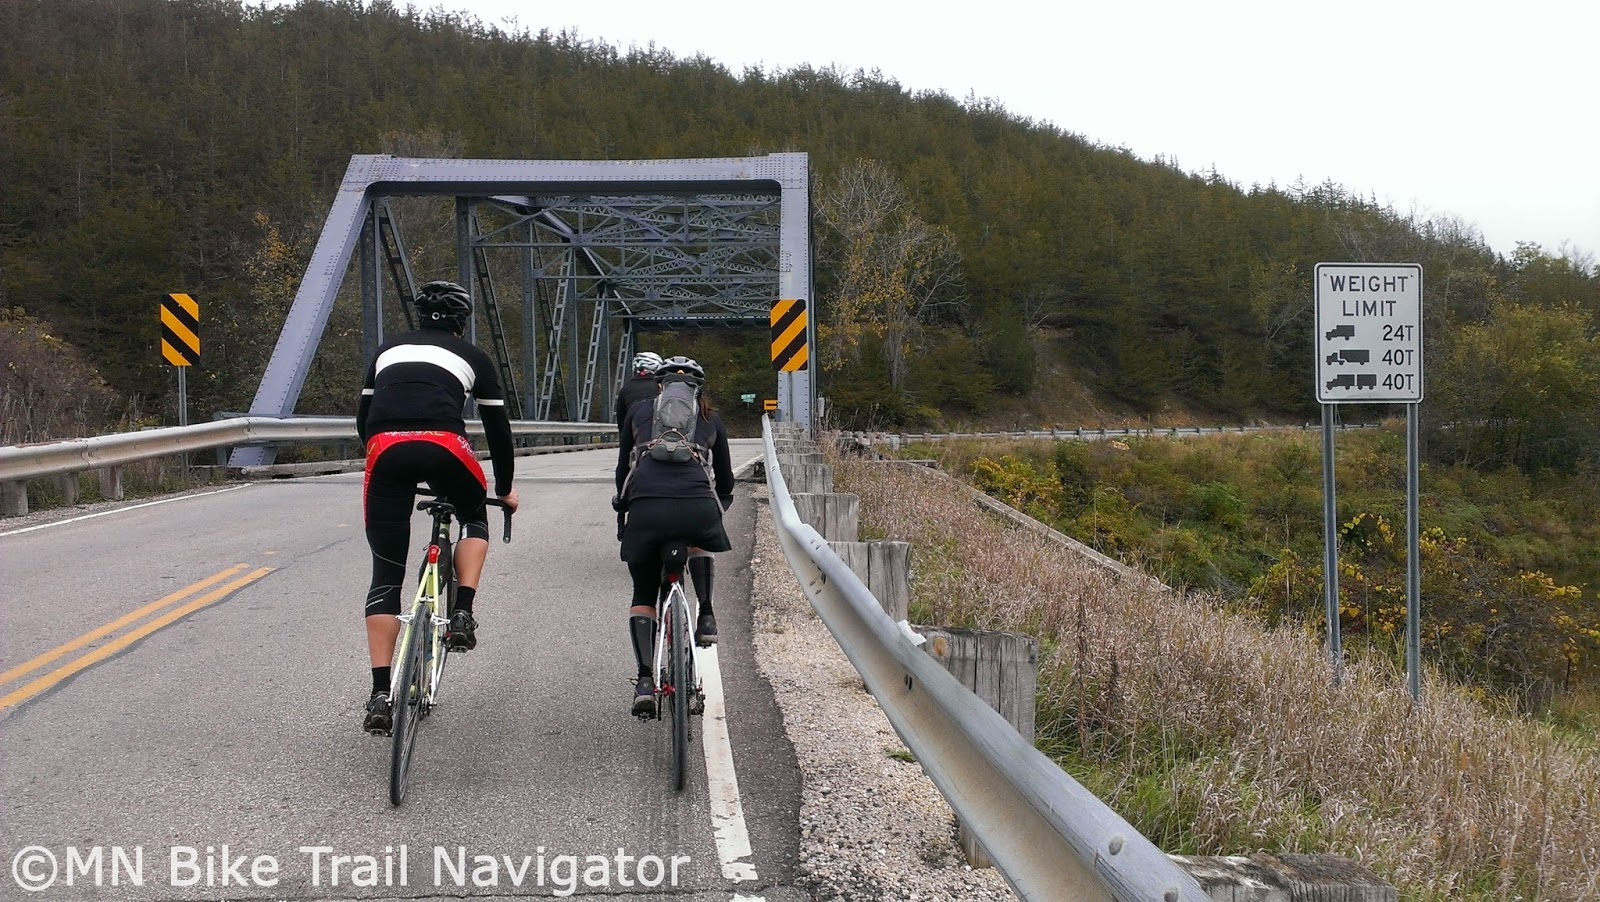 Mn Bike Trail Navigator Resources For Planning A